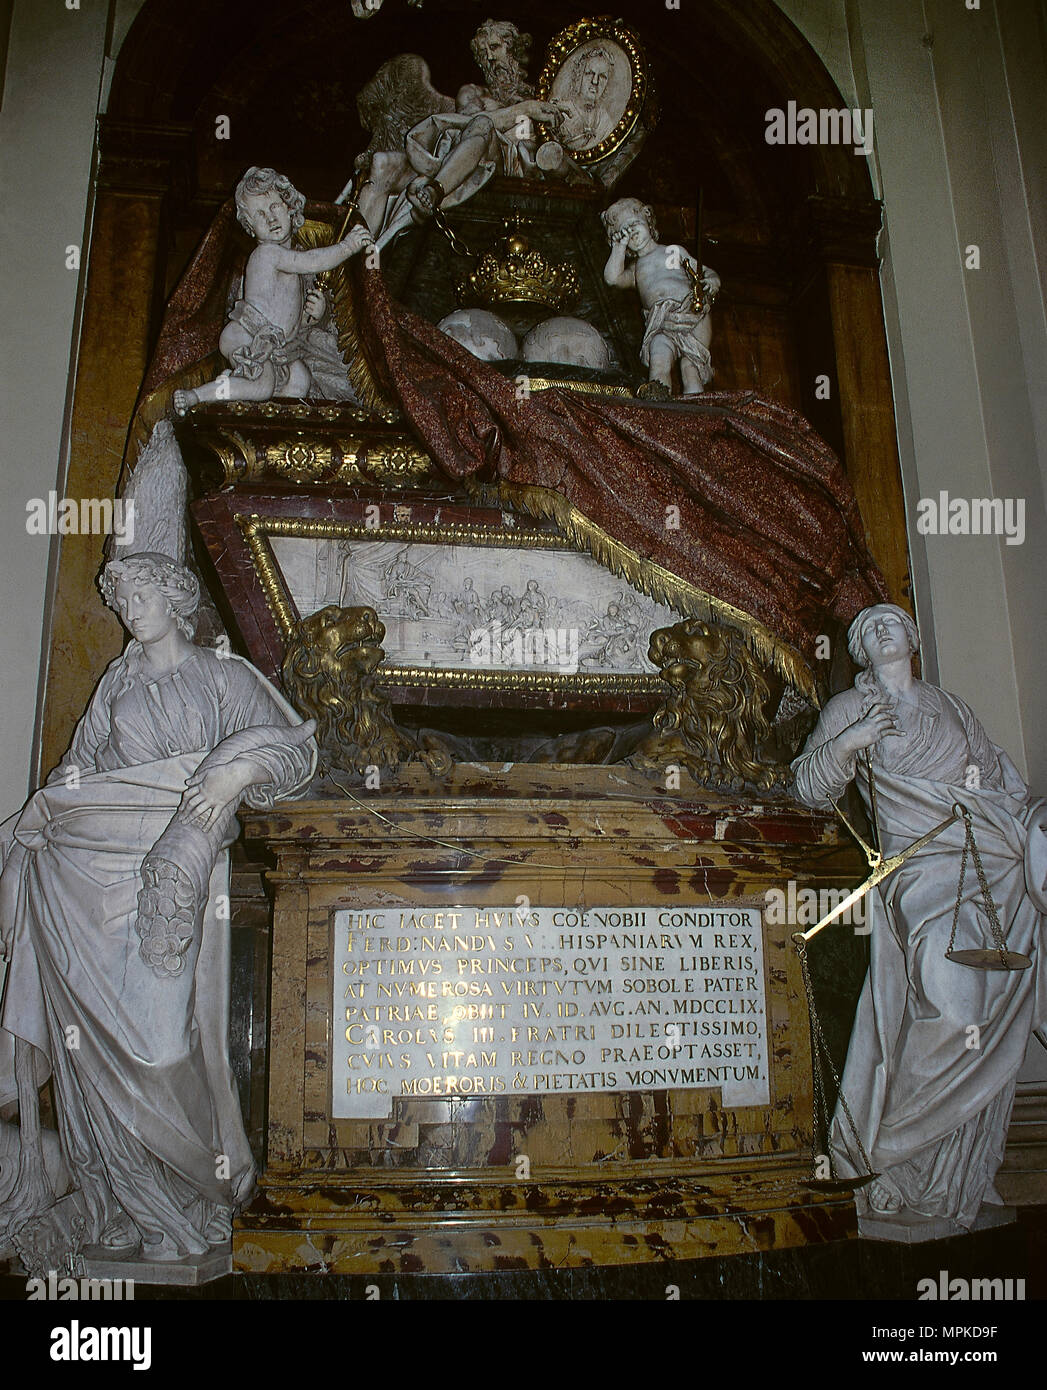 Sepulcher of Ferdinand VI of Spain (Madrid, 1713-Villaviciosa de Odon, 1759). Third ruler of the Spanish Bourbon dinasty. Sculptural work designed by the architect Francesco Sabatini (1722-1797) and sculpted by Francisco Gutierrez Arribas (1727-1782). Convent of the Salesas Reales (Visitation of Our Lady). Madrid, Spain. - Stock Image